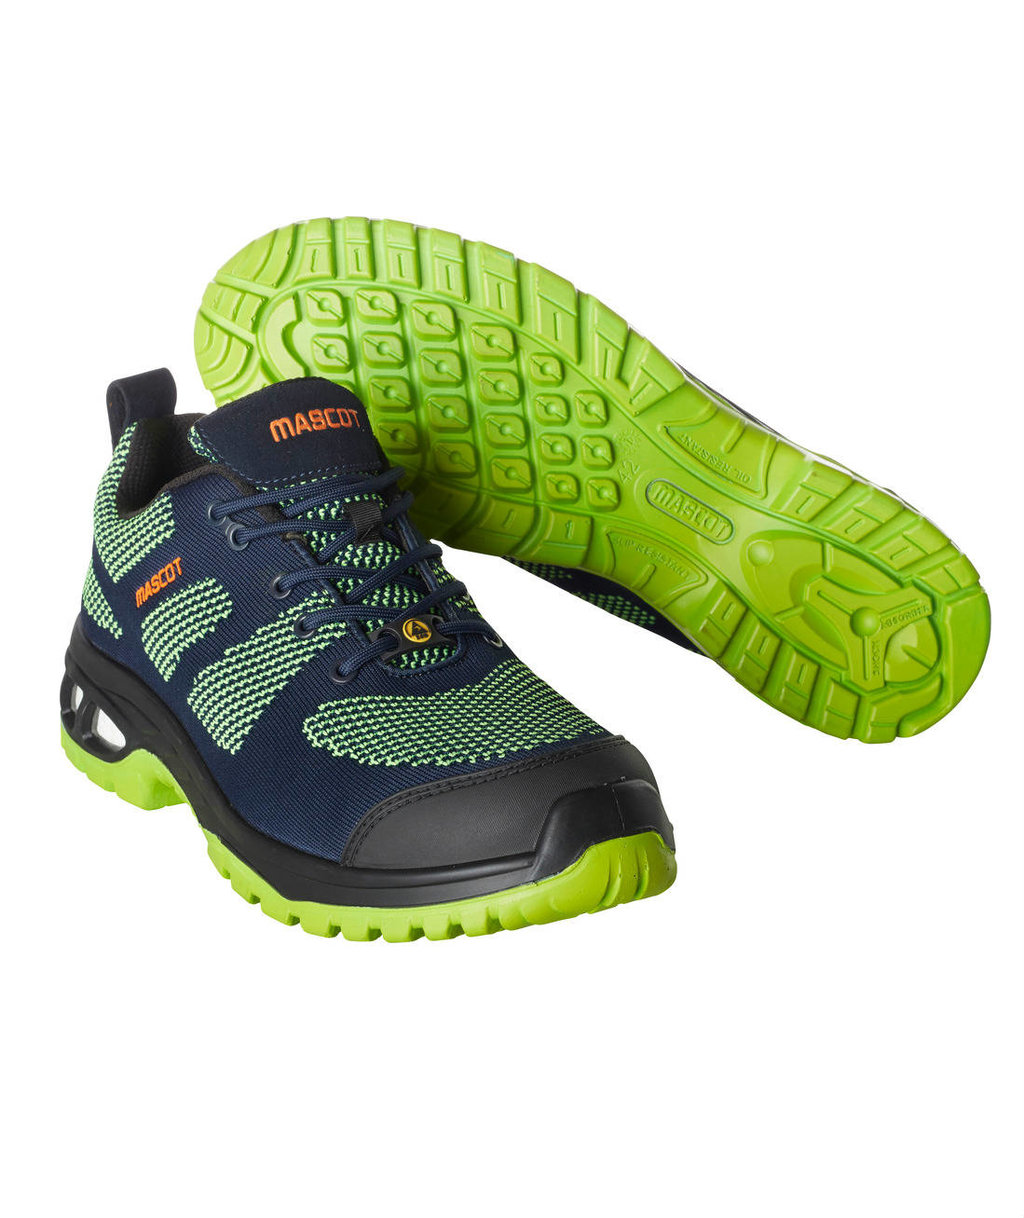 Mascot Energy safety shoes S1P, Dark Navy/Lime Green